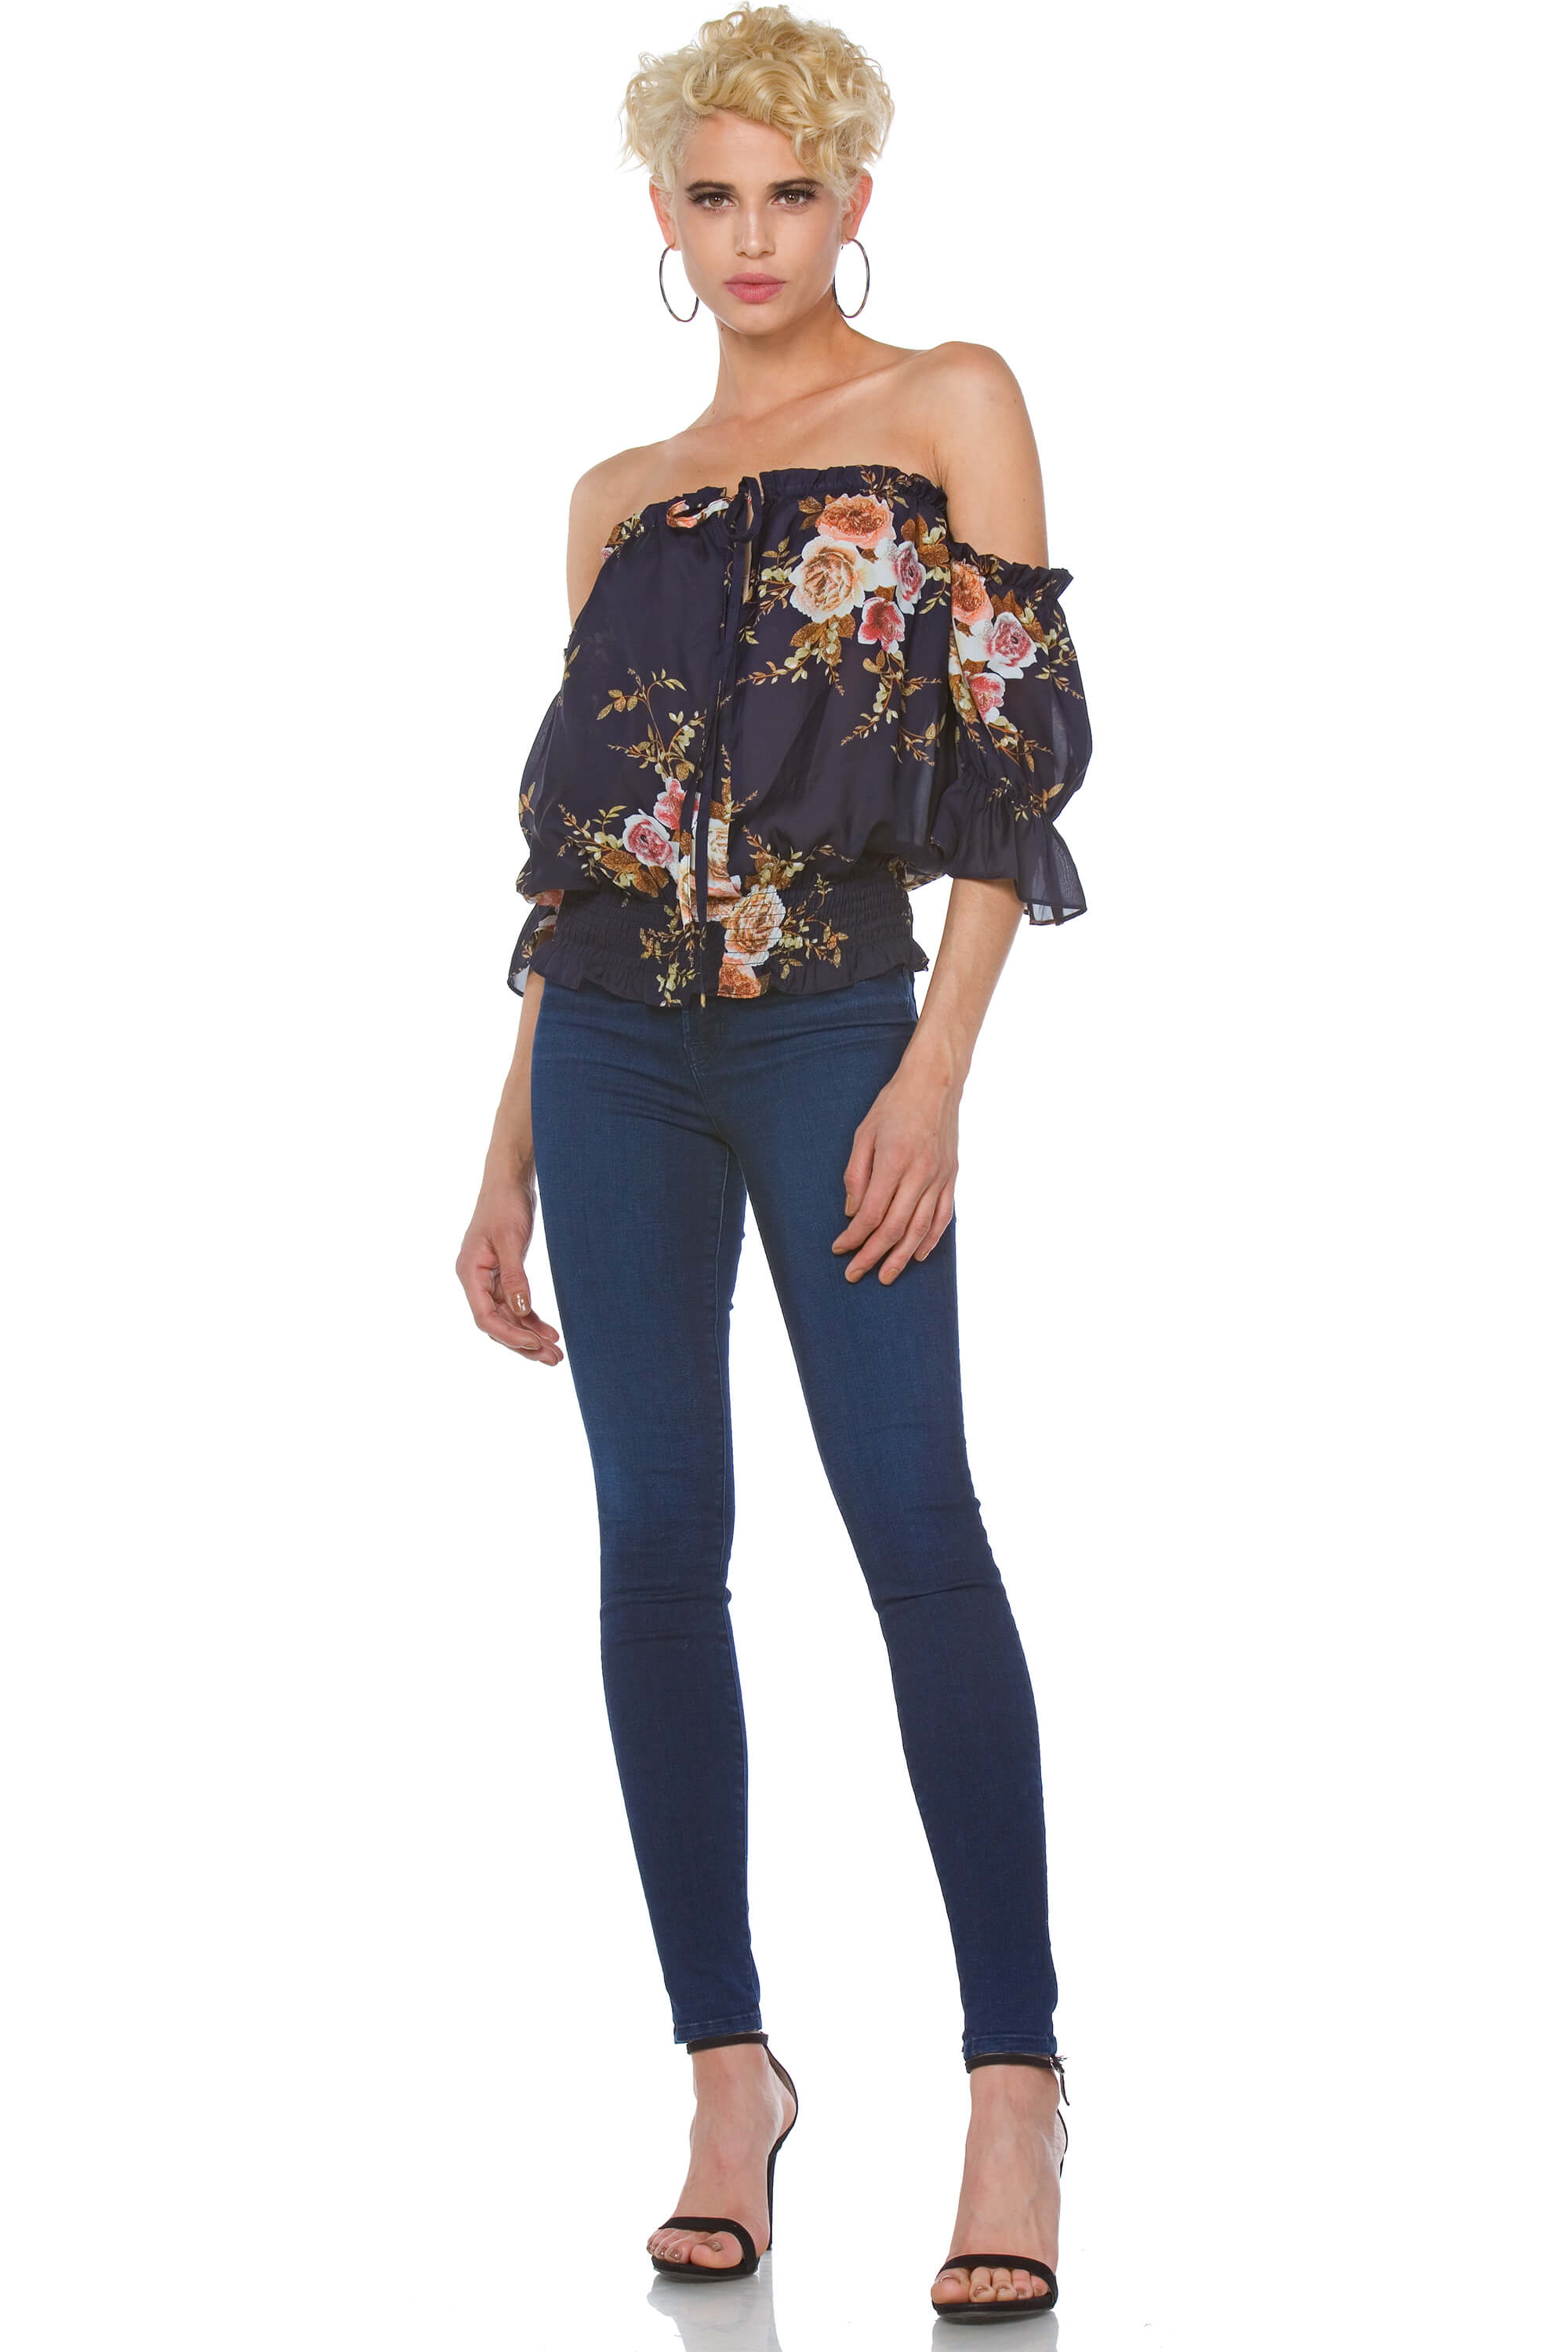 Sadie Satin Convertible Floral Top for Women